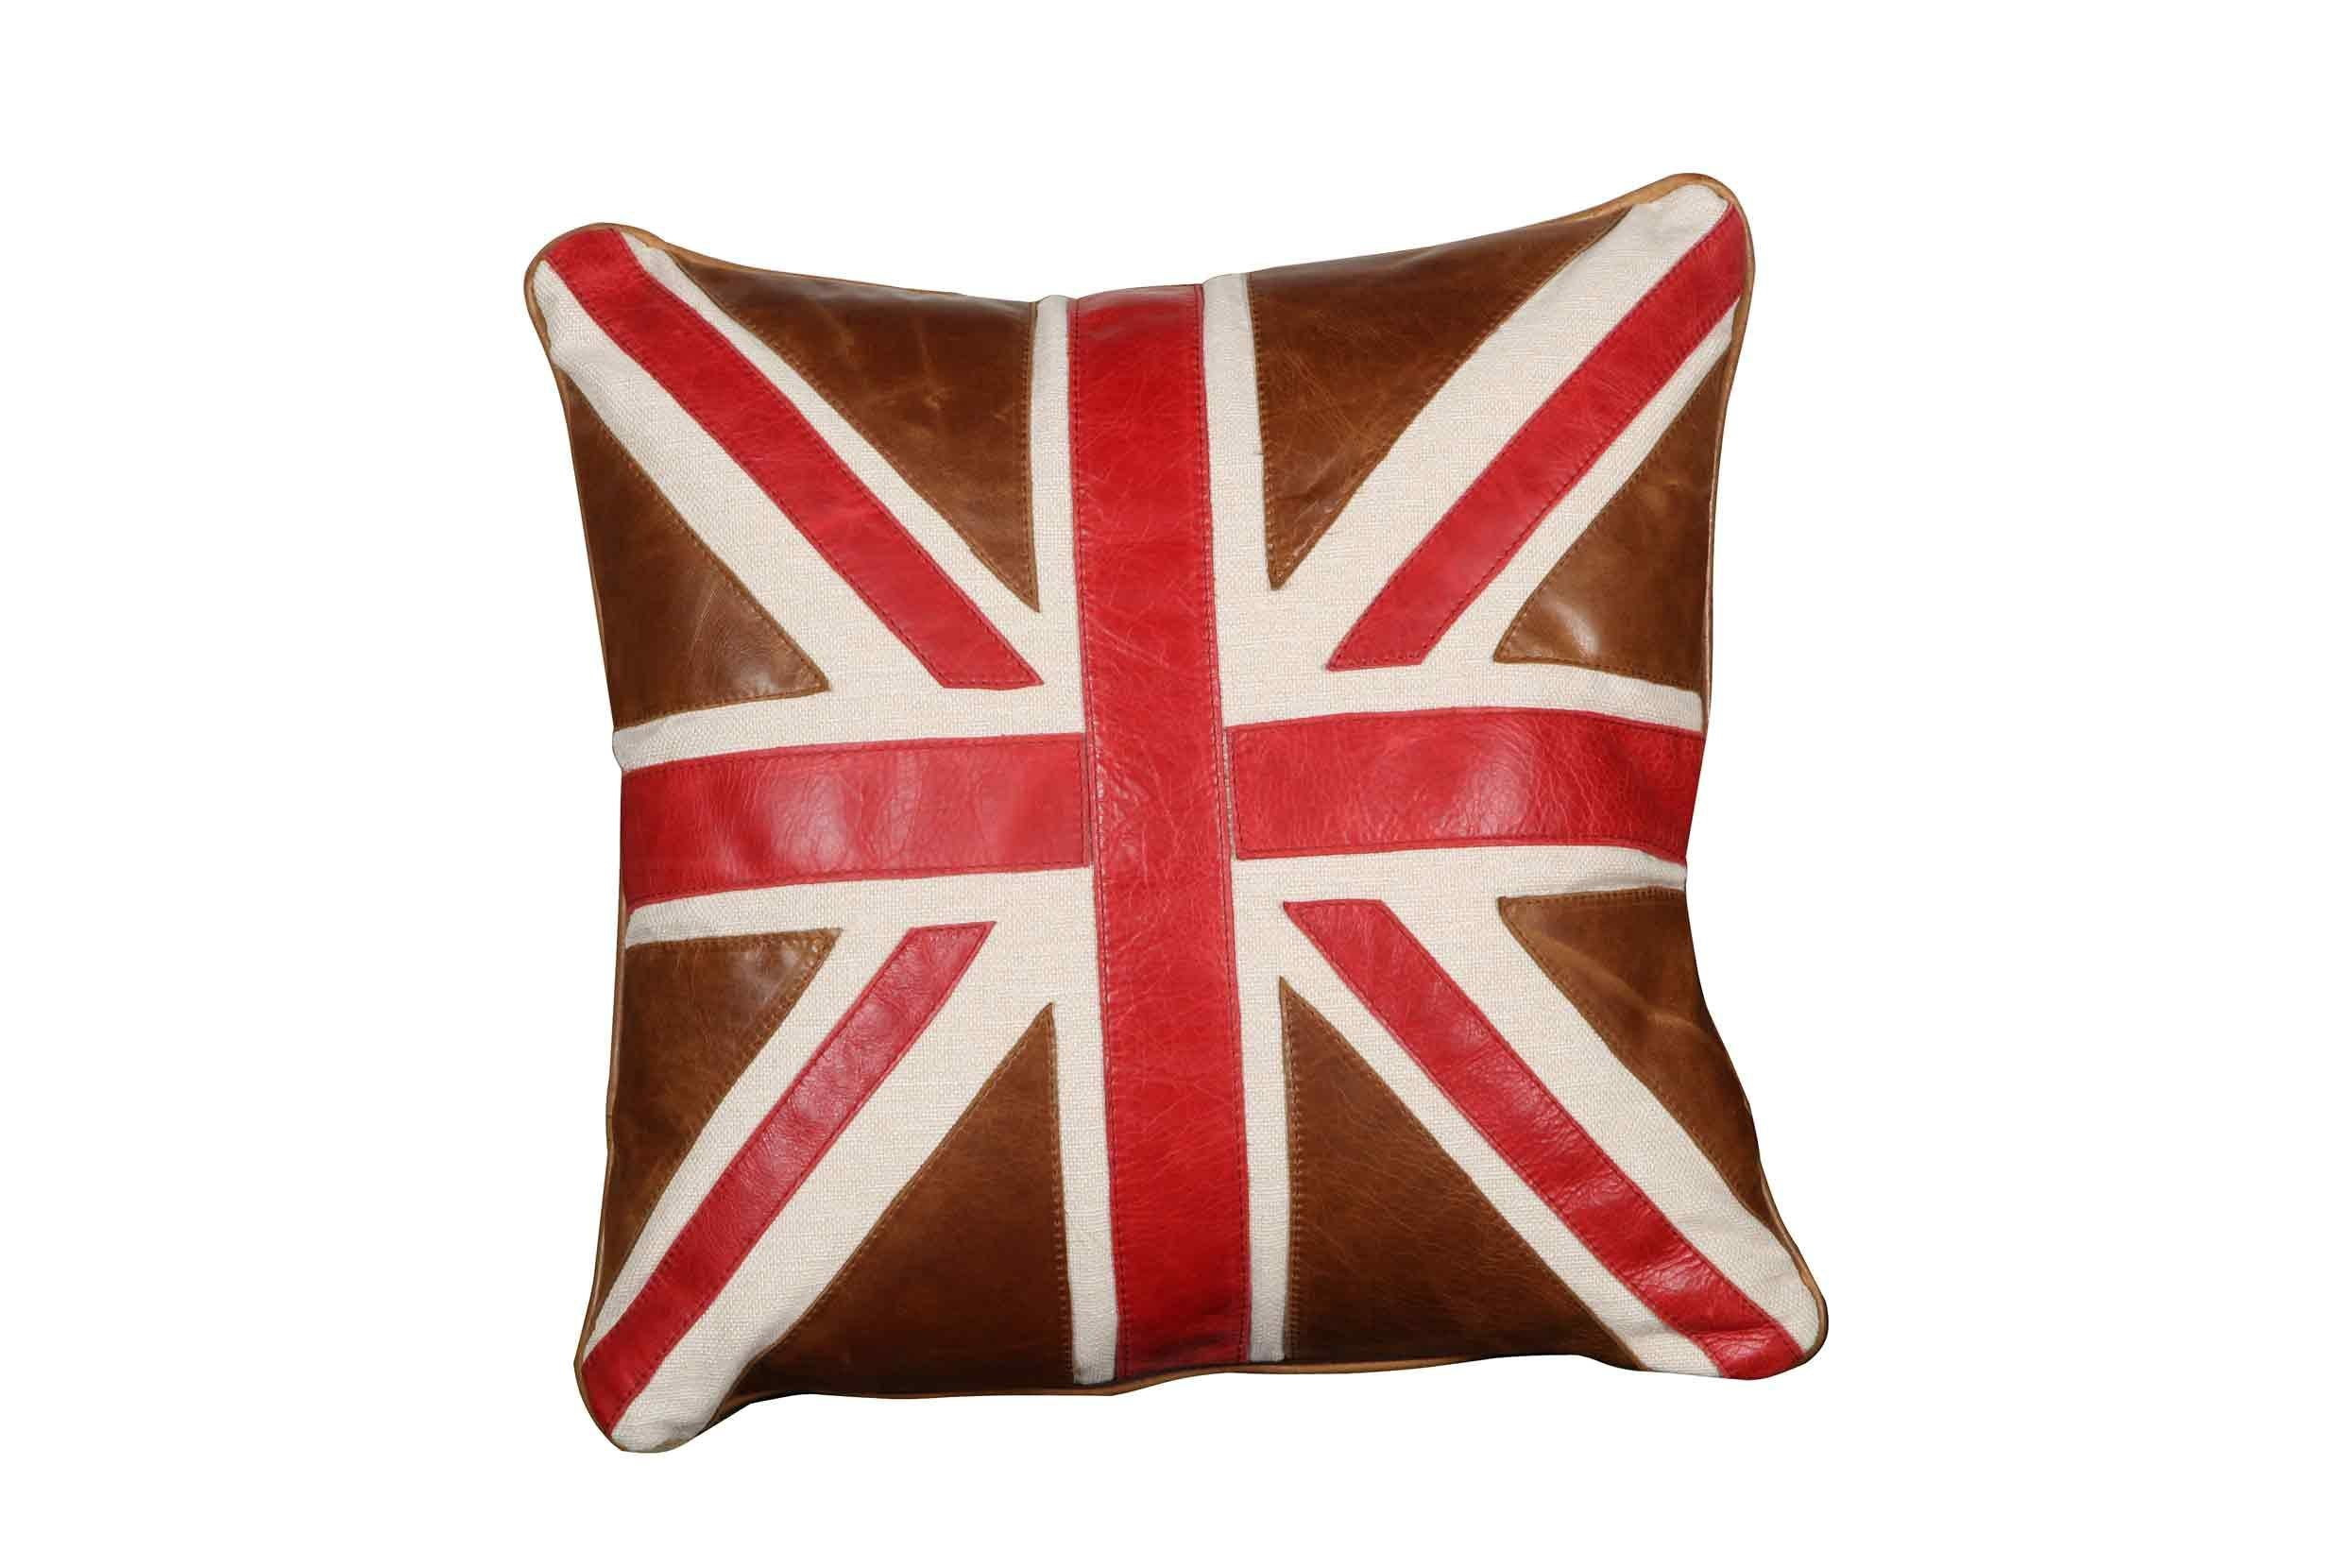 Harris Tweed and Leather Cushions-harris tweed cushions-Against The Grain Furniture-Leather Union Jack 40 cm square-Against The Grain Furniture